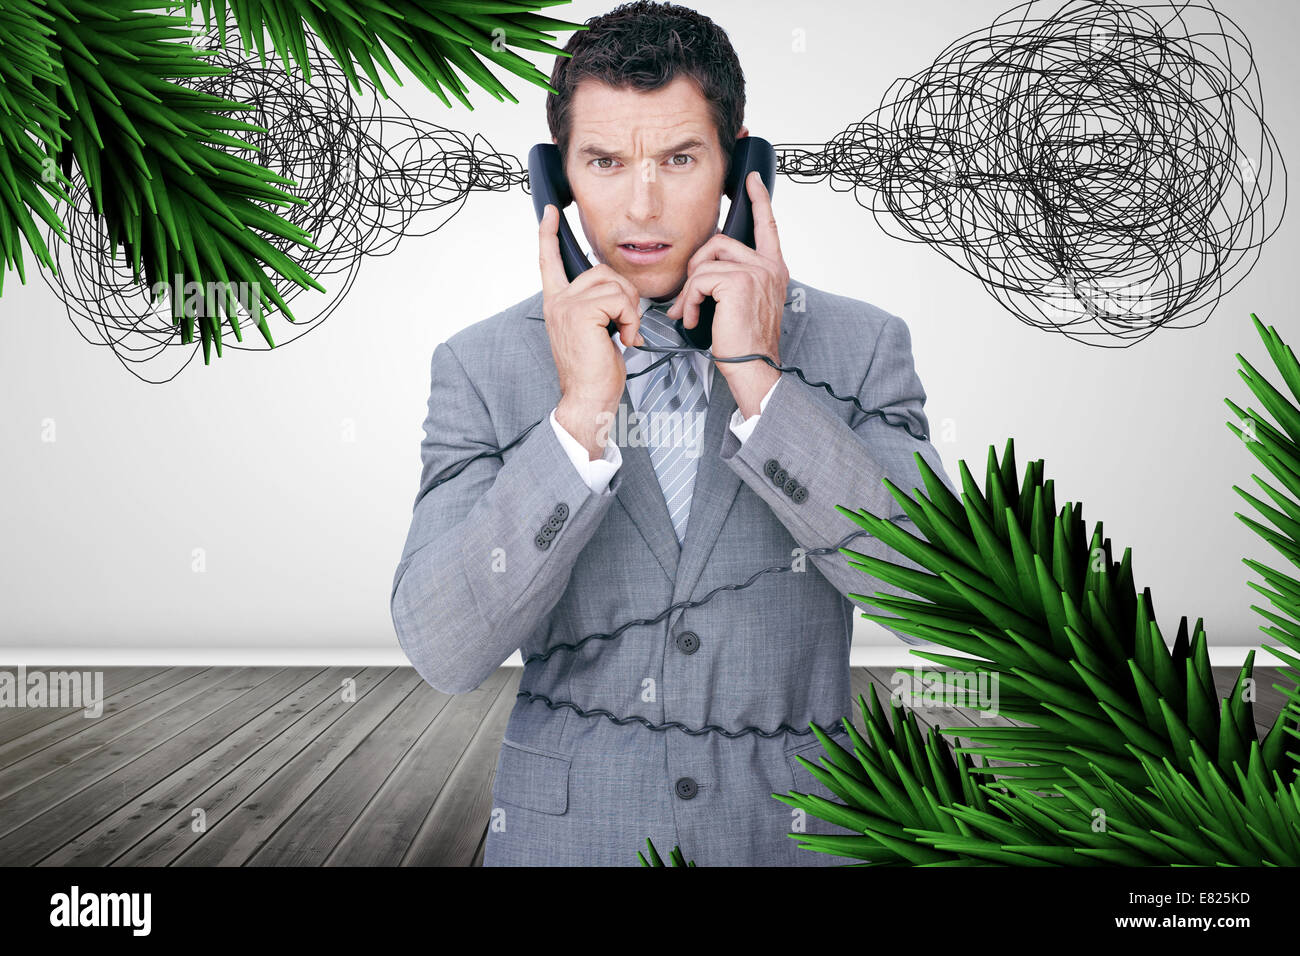 Overworked businessman holding two telephones - Stock Image